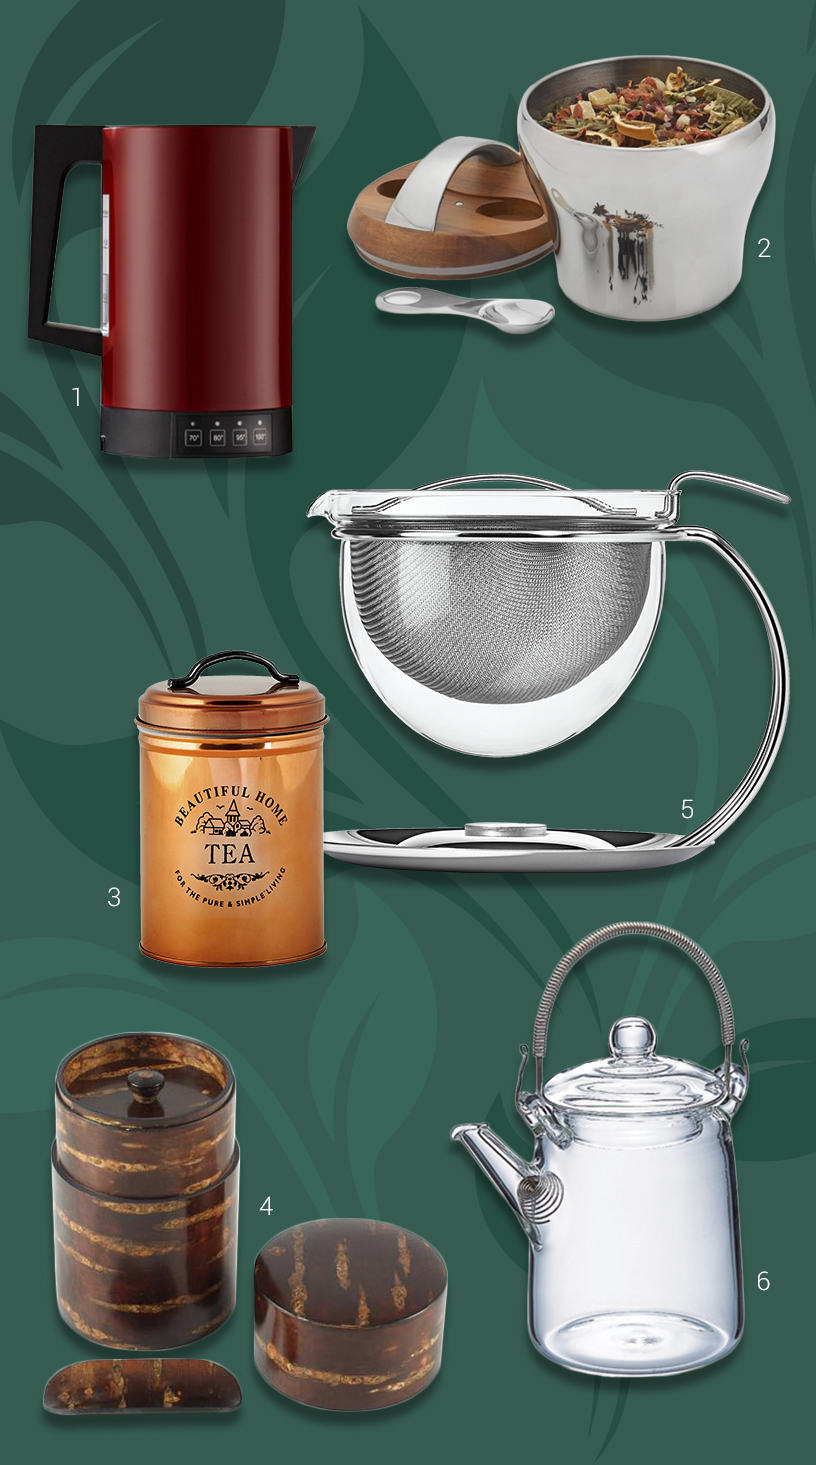 storage-kettle-glass-teapot_b